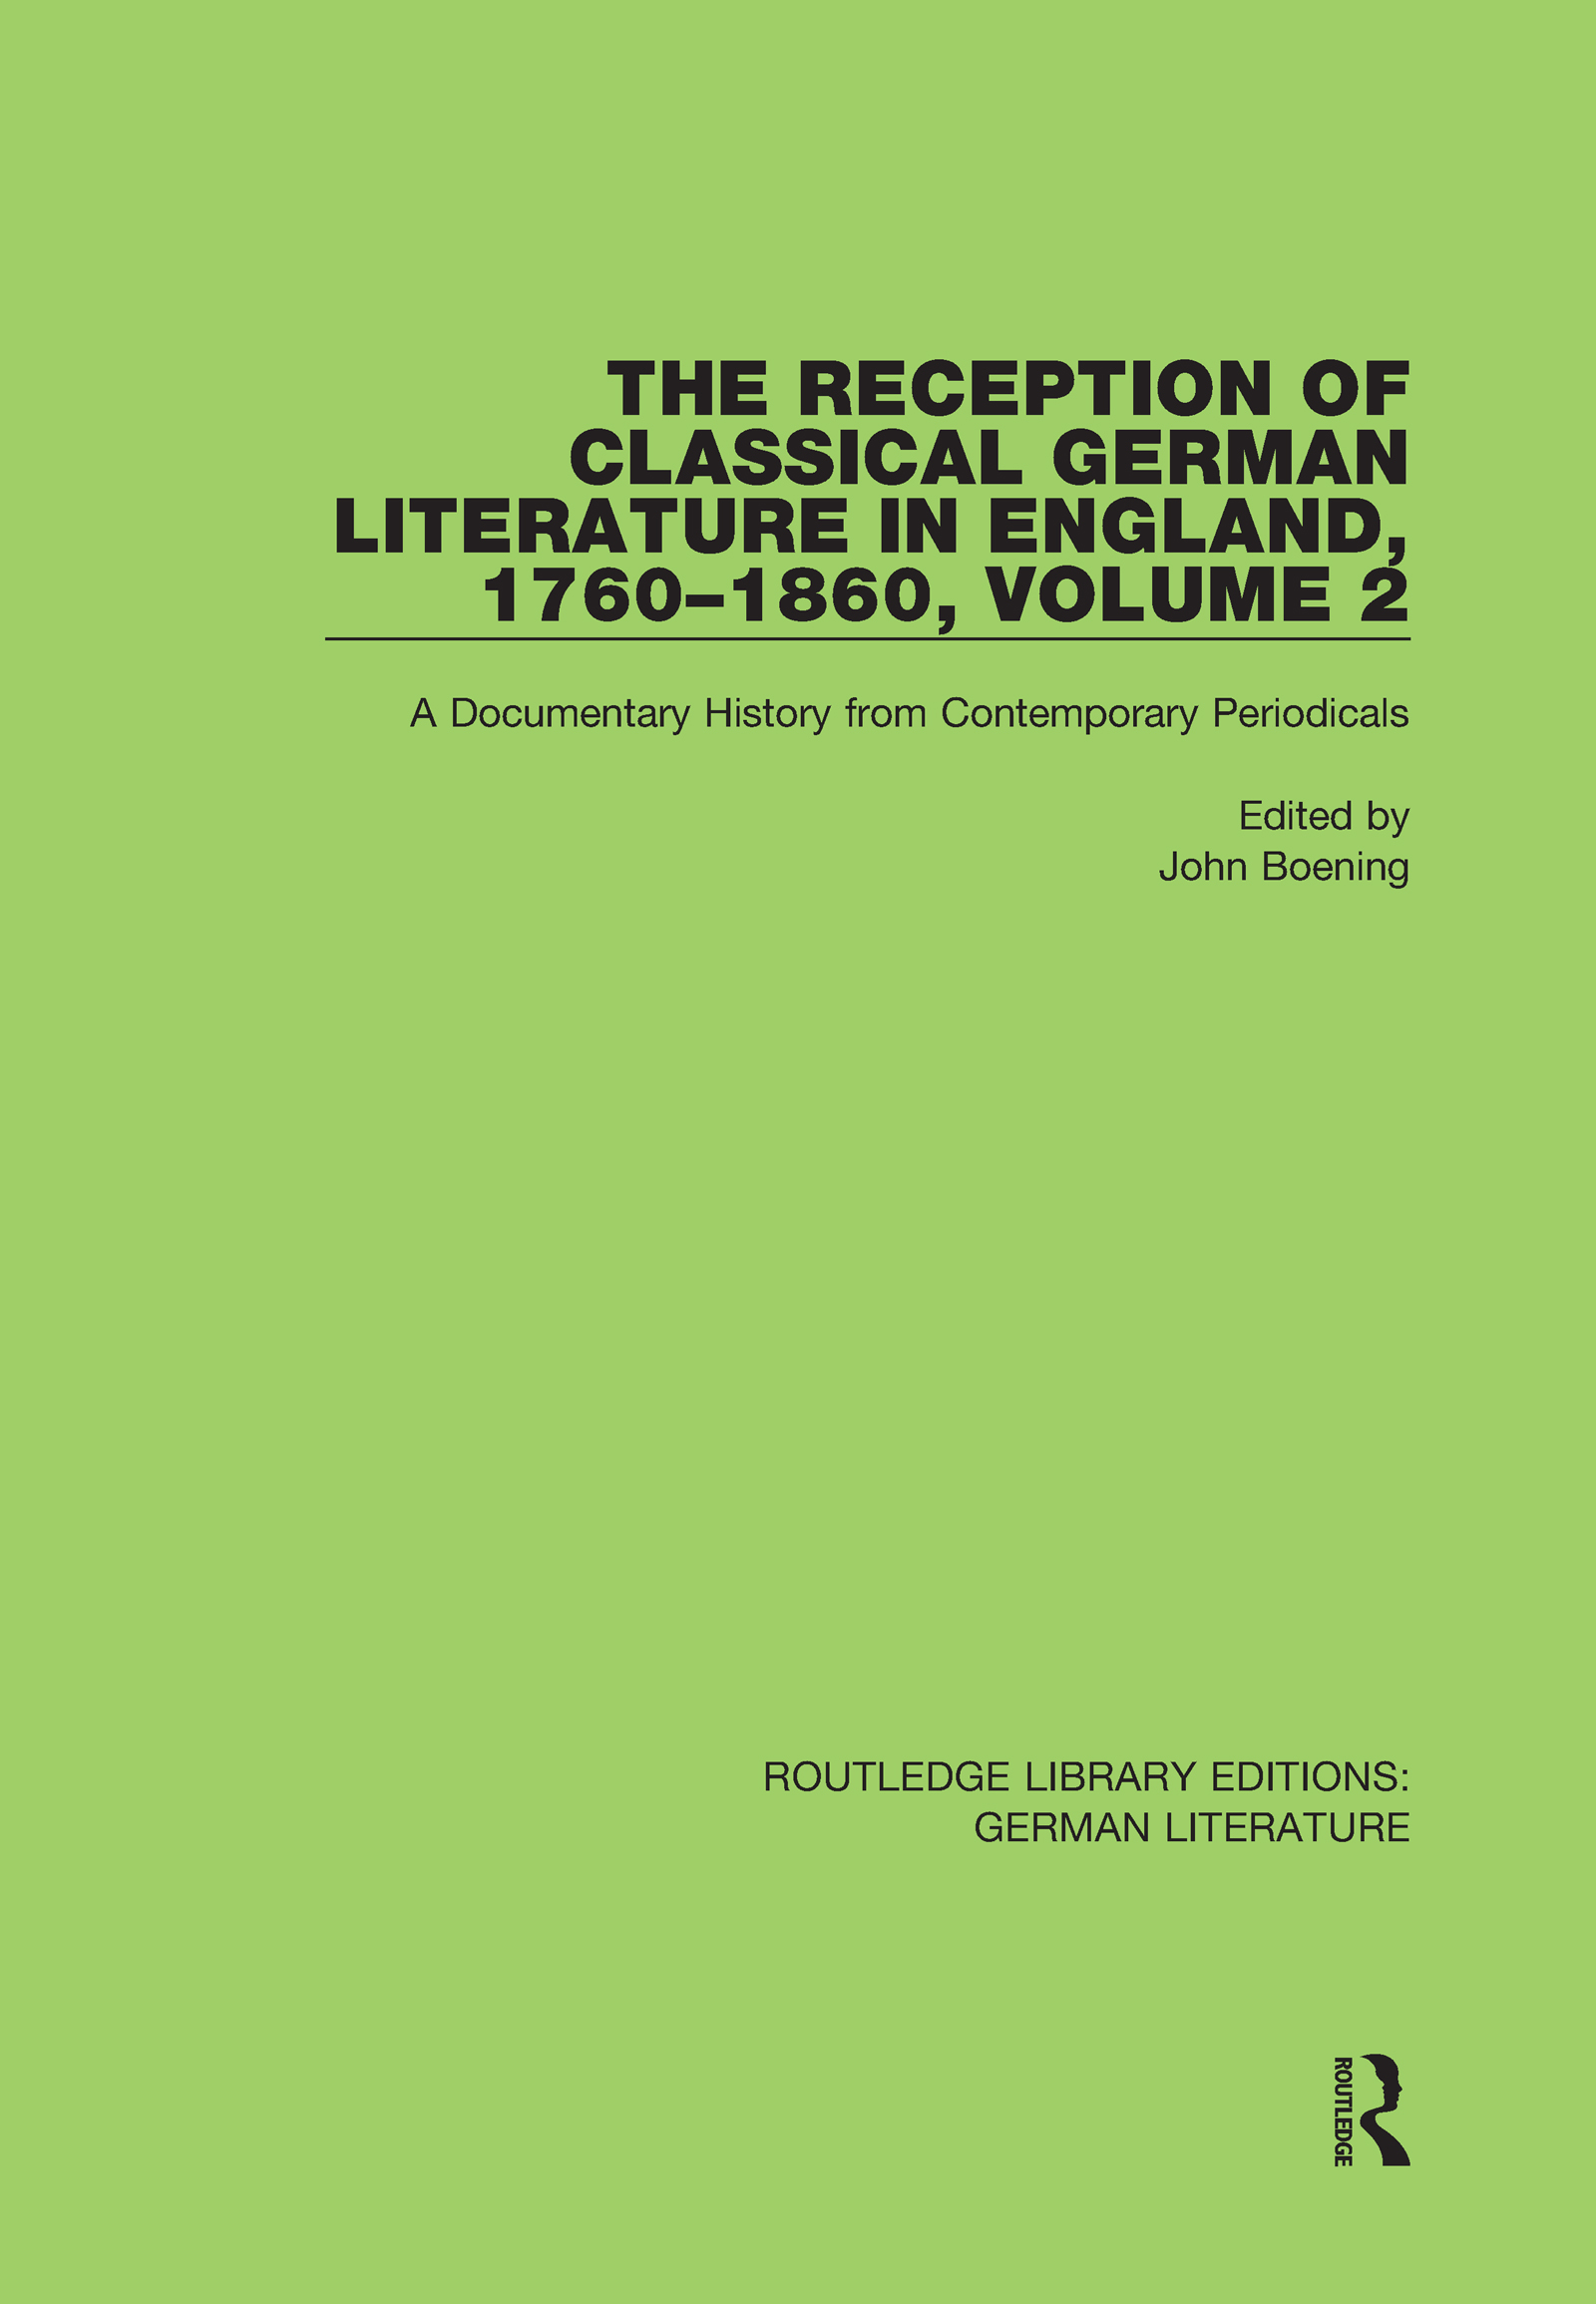 The Reception of Classical German Literature in England, 1760-1860, Volume 2